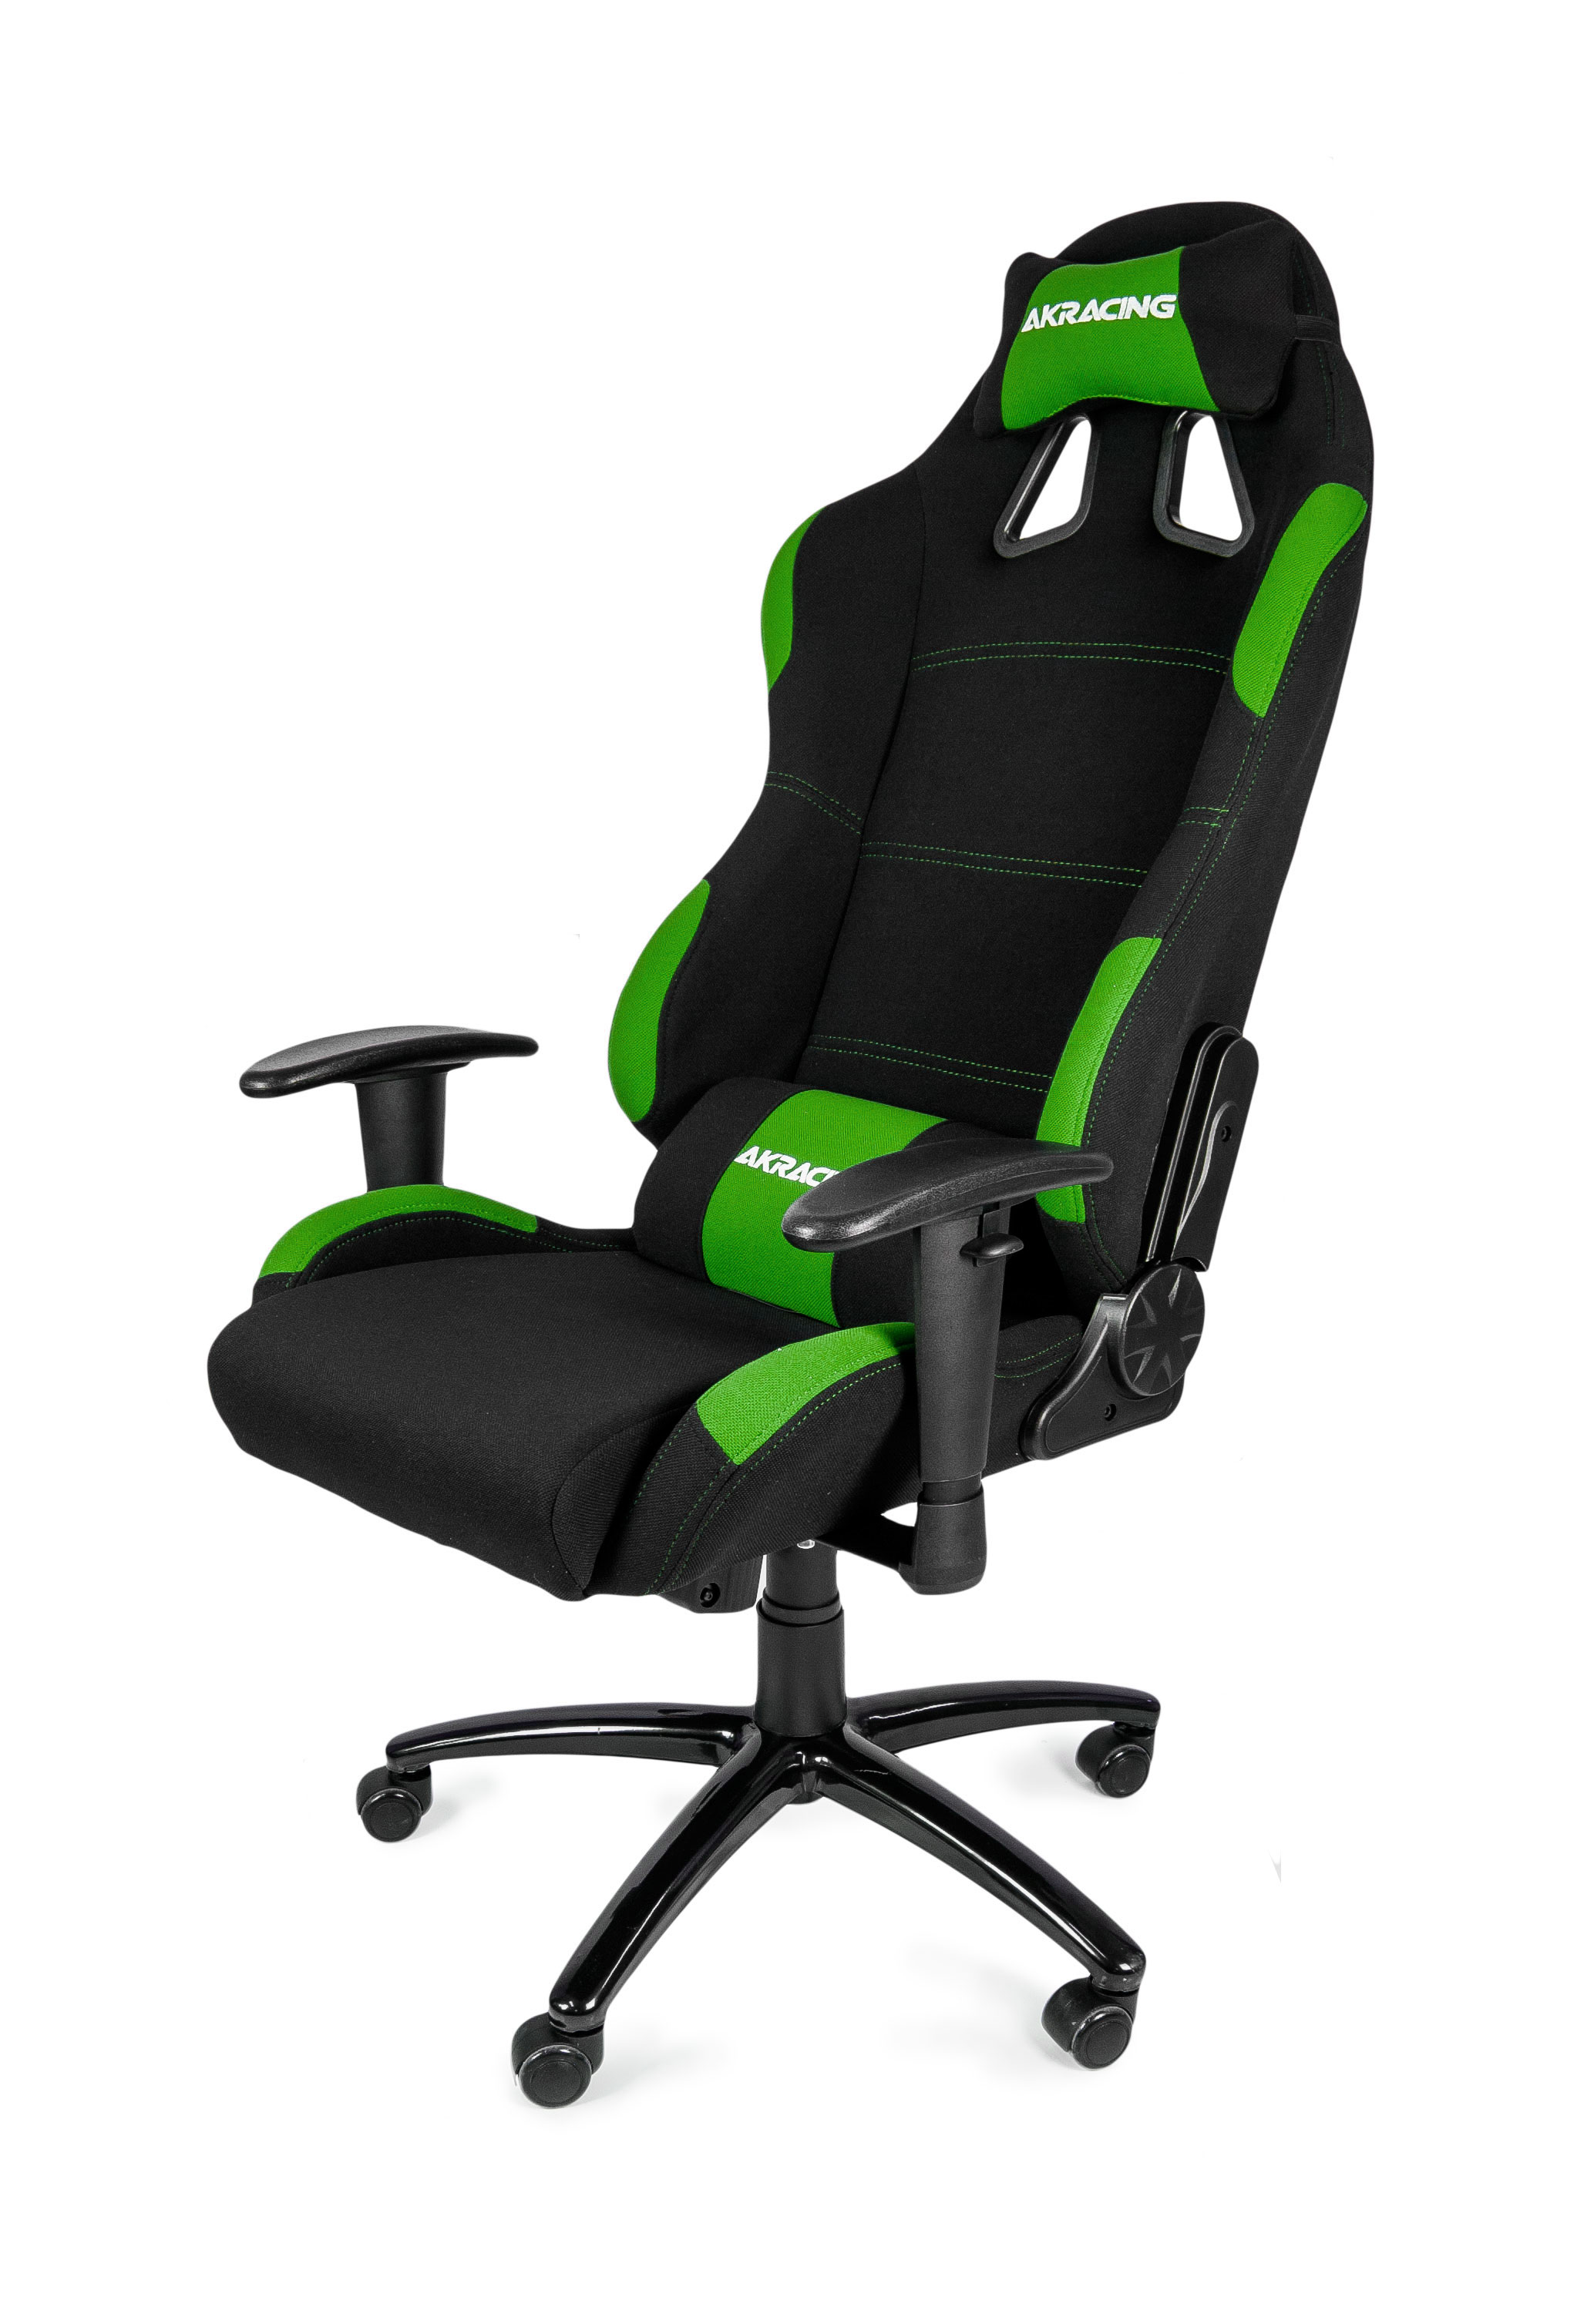 Akracing gaming chair black green ak k7012 bg for Silla razer gamer